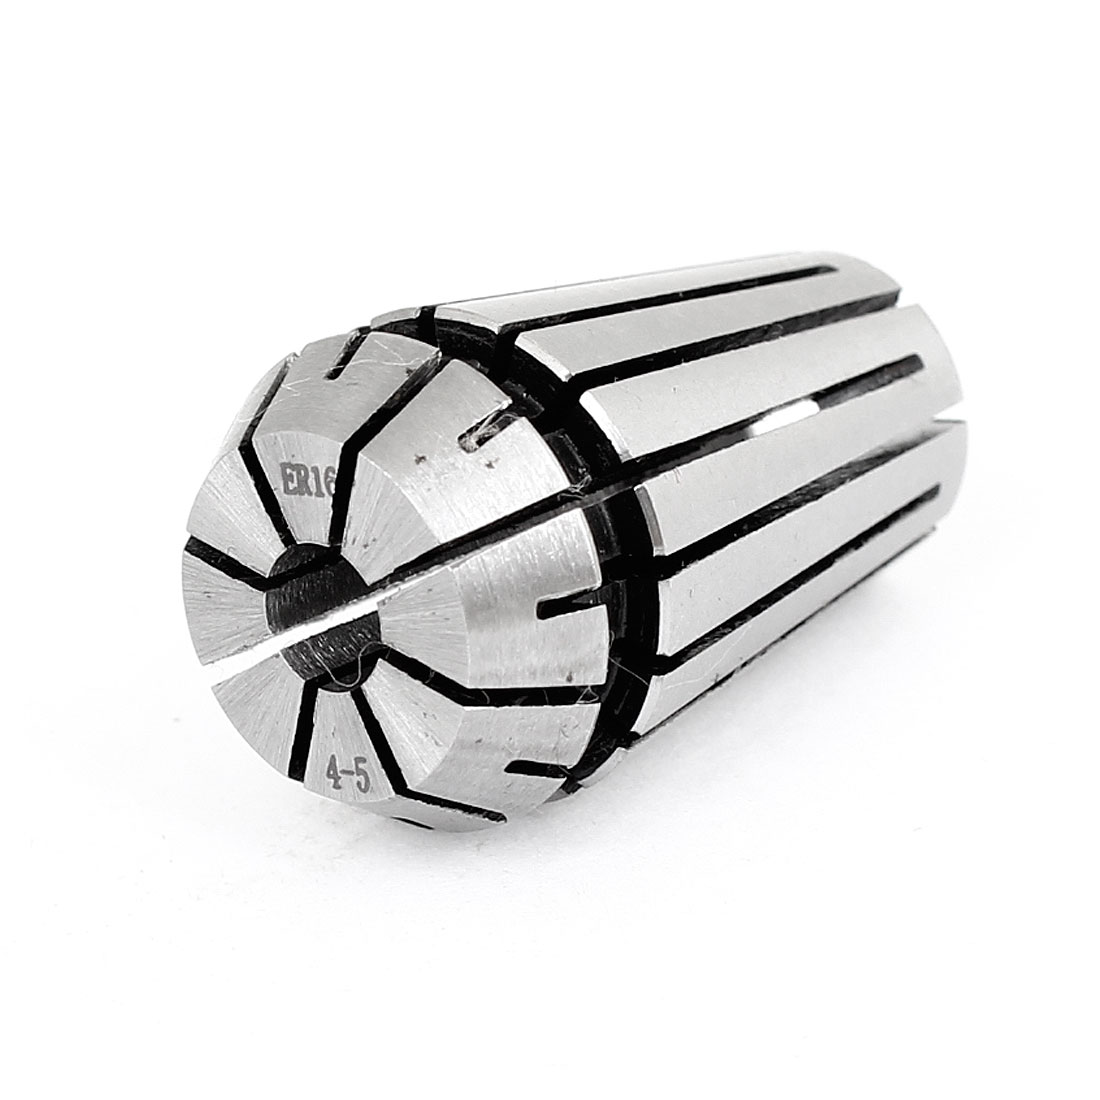 Machinery Stainless Steel 5-4mm ER16 Spring Collet Chuck Silver Tone